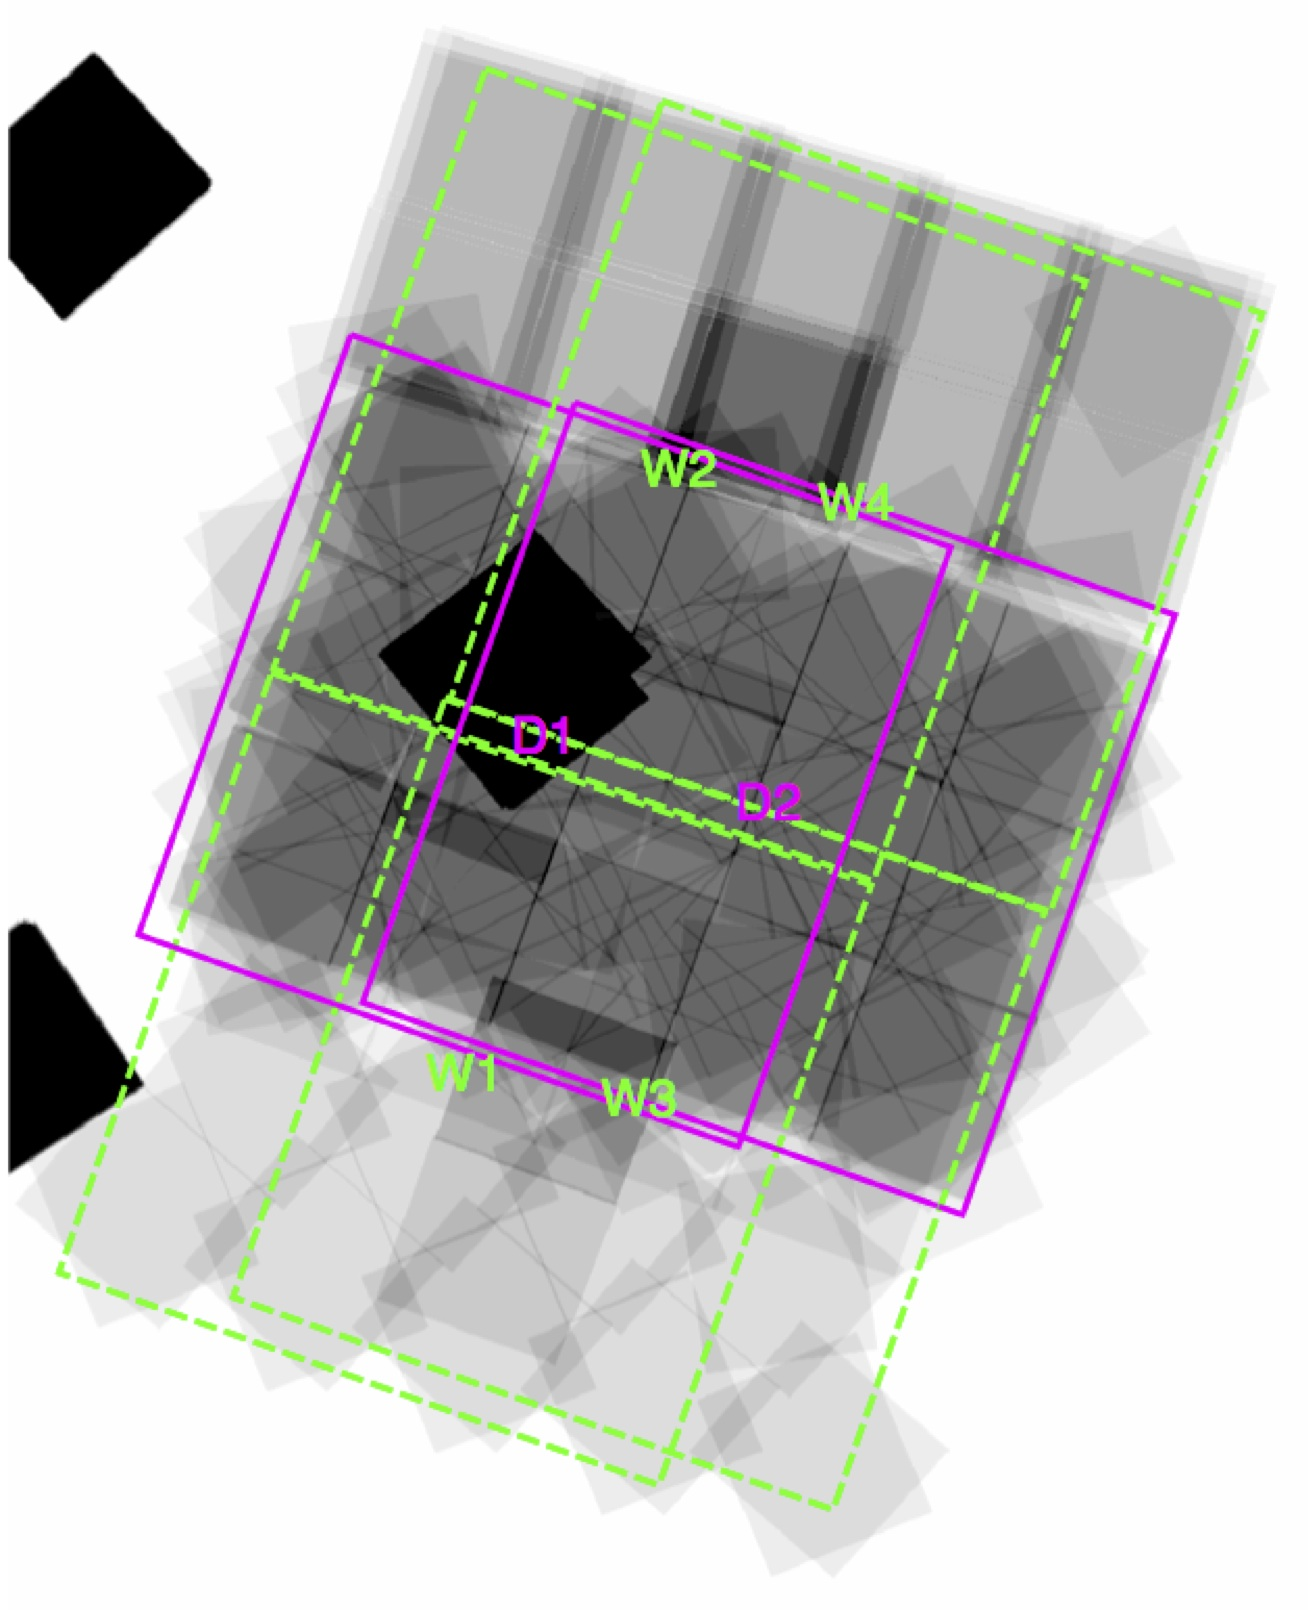 Location of the Hawk-I pointings overlaid on the exposure map of the WFC3 data available within the GOODS-South field. Magenta lines show the field-of-view of pointings D1 and D2, while the green lines show pointings W1, W2, W3 and W4. The black square at the centre is the HUDF12 region (Koekemoer et al. 2013). The greyscale of the WFC3/IR images is on a linear stretch that saturates at the deepest levels of the CANDELS data; the HUDF12 is deeply oversaturated